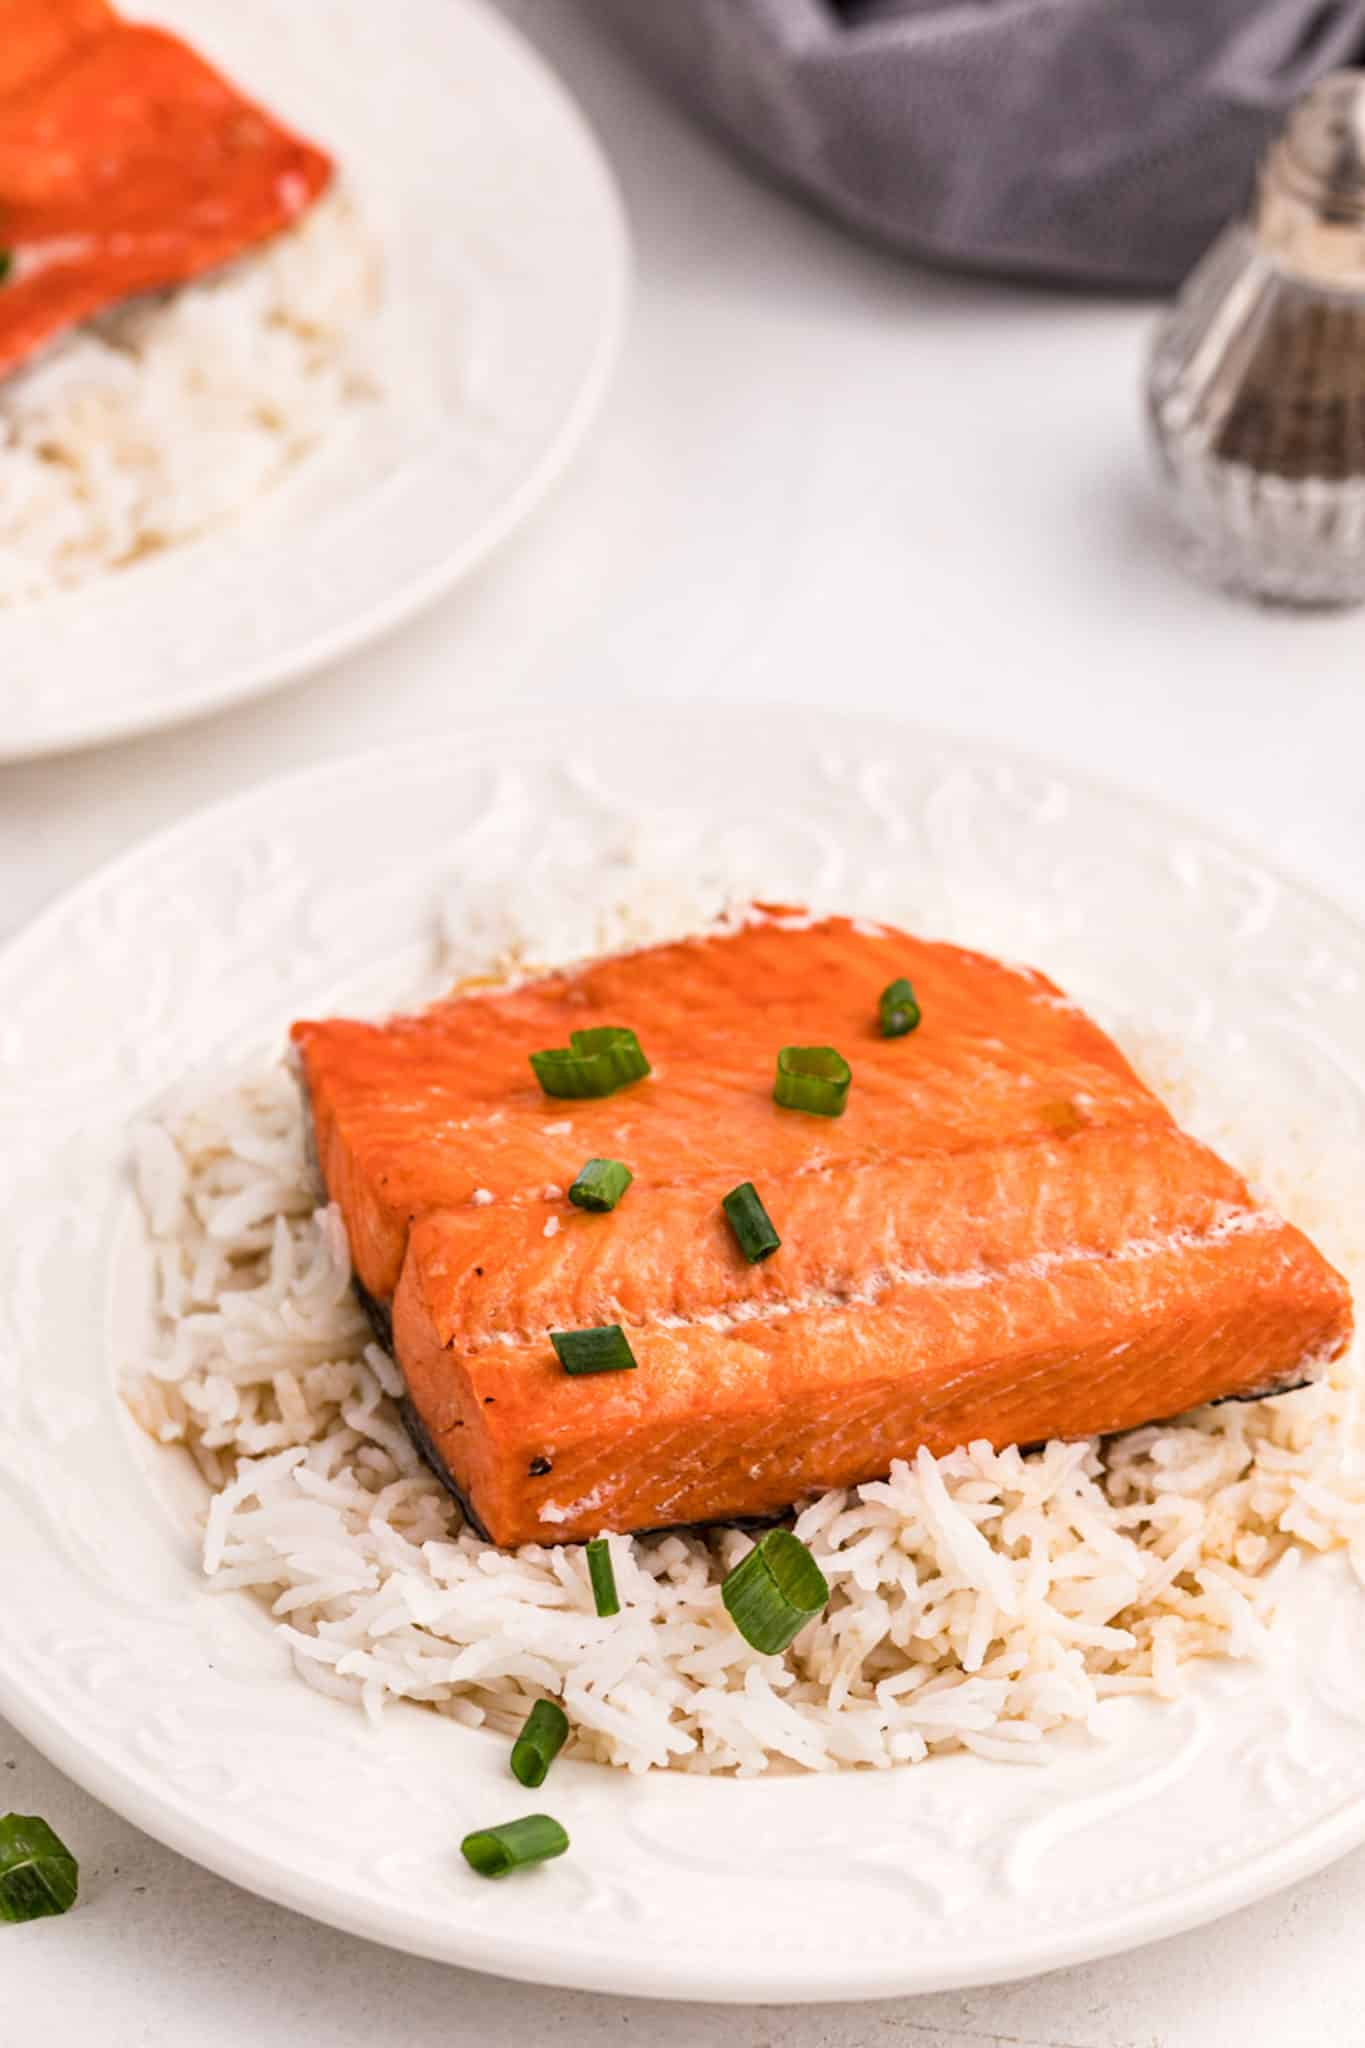 Salmon fillet on a plate with white rice